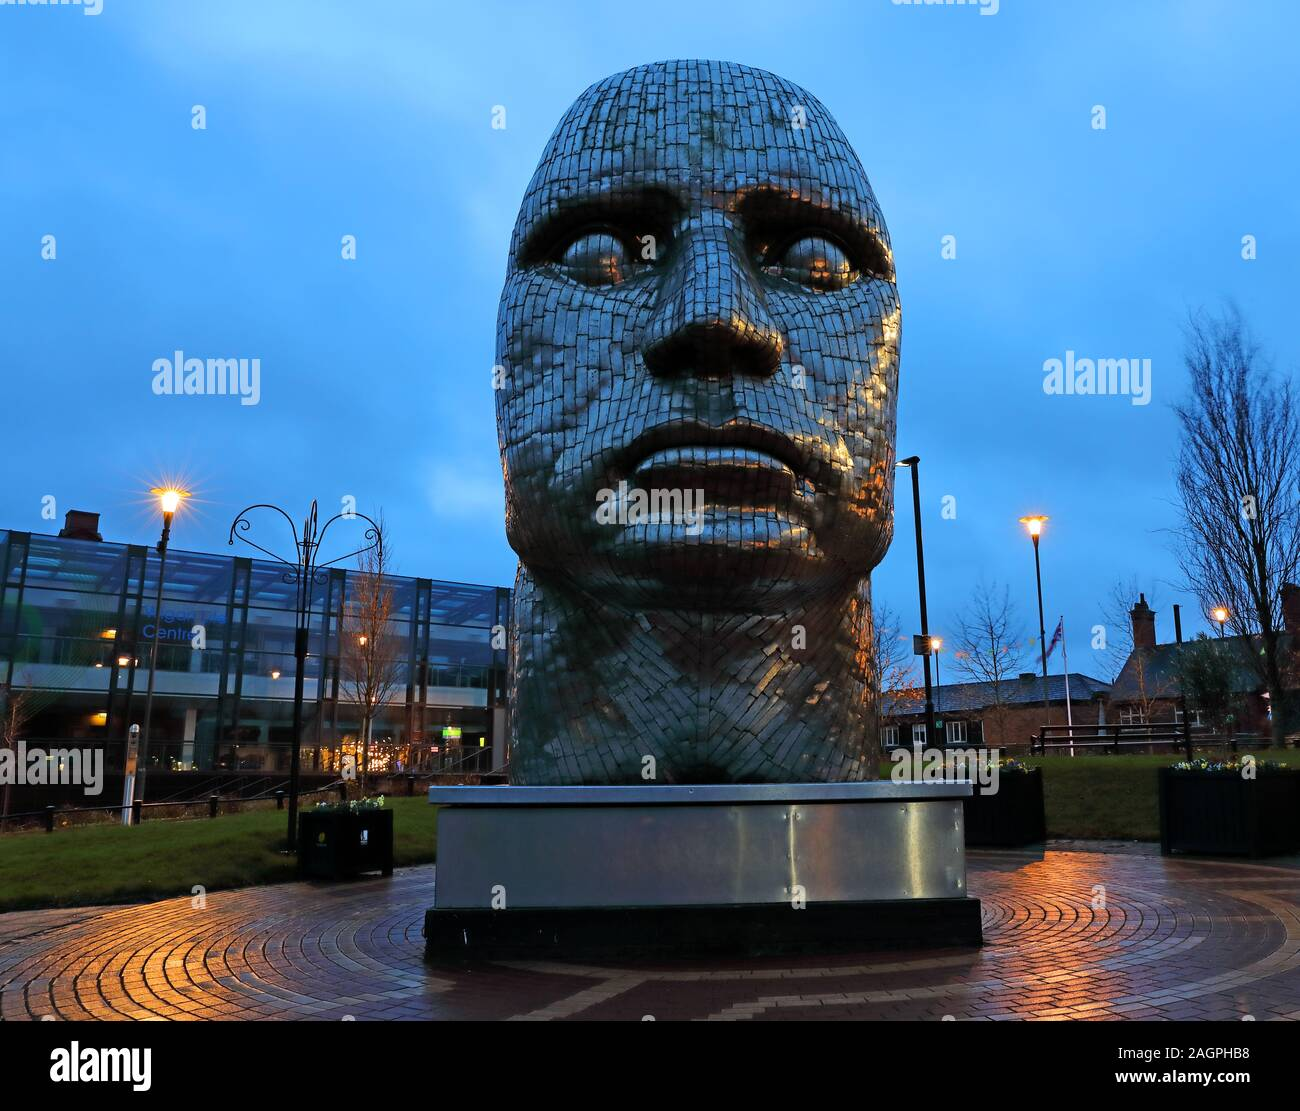 HotpixUK,@HotpixUK,GoTonySmith,town centre,The Face,art,Greater Manchester,England,UK,WN1 1YB,Manchester,night,at night,The Wiend,Wiend,Marylebone,stainless steel sculpture,stainless steel,steel,sculptor Rick Kirby,sculptor,Rick Kirby,kirby,portrait,sculptured portrait,sculptured,Wigan people,people of Wigan,public art,artworks,art-works,Modus Properties,Wigan Council,Modus,Louise Pearson,regeneration